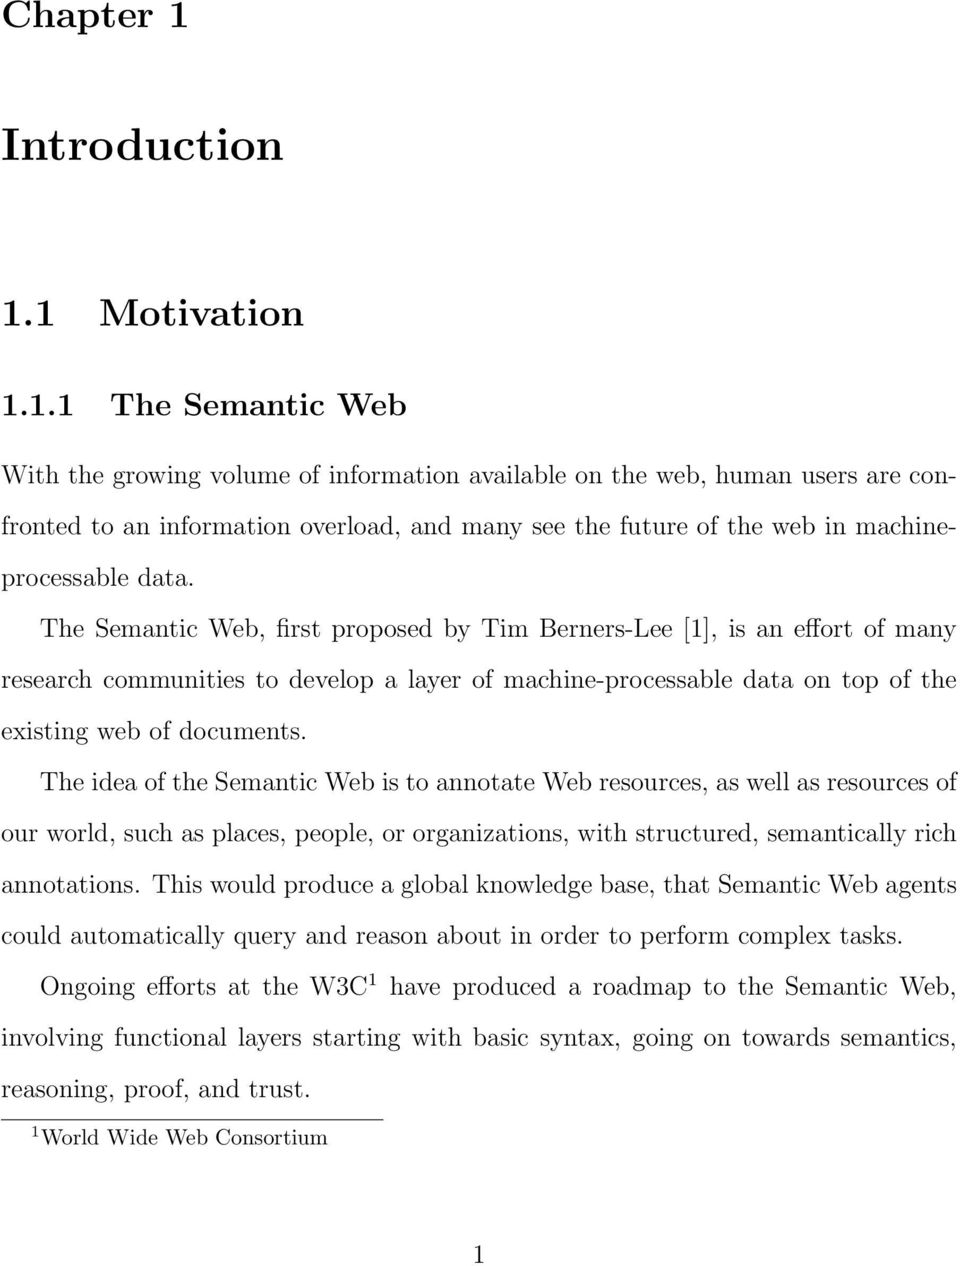 1 Motivation 1.1.1 The Semantic Web With the growing volume of information available on the web, human users are confronted to an information overload, and many see the future of the web in machineprocessable data.